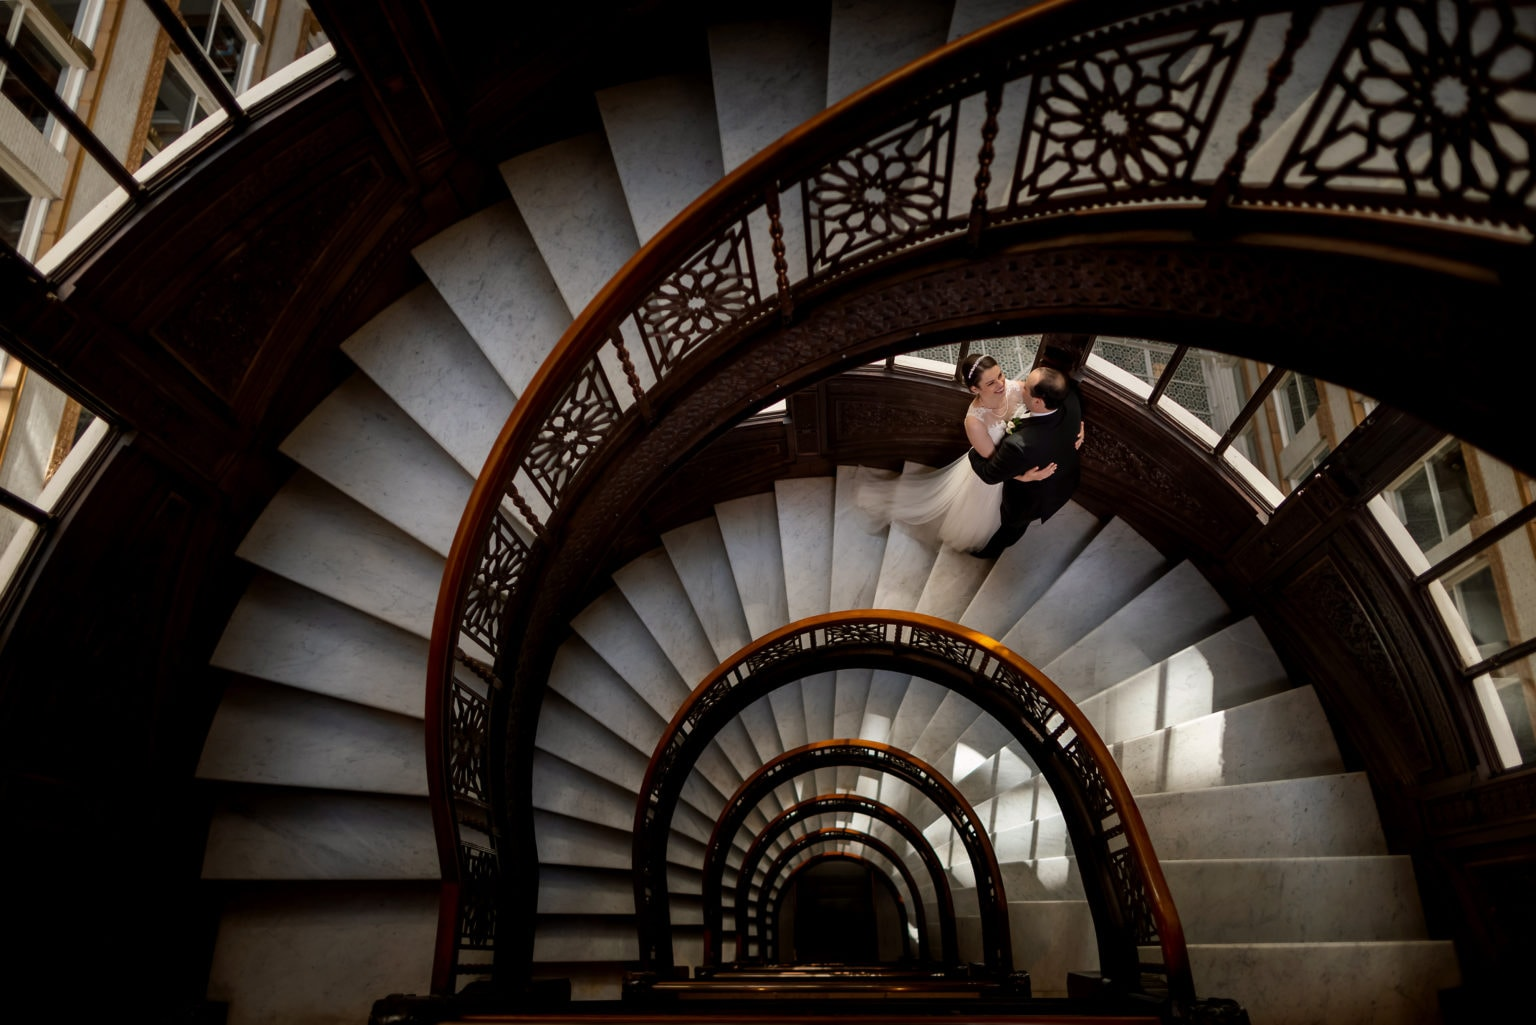 Bride and groom pose for portrait on the historic spiral staircase at the Rookery Building in downtown Chicago